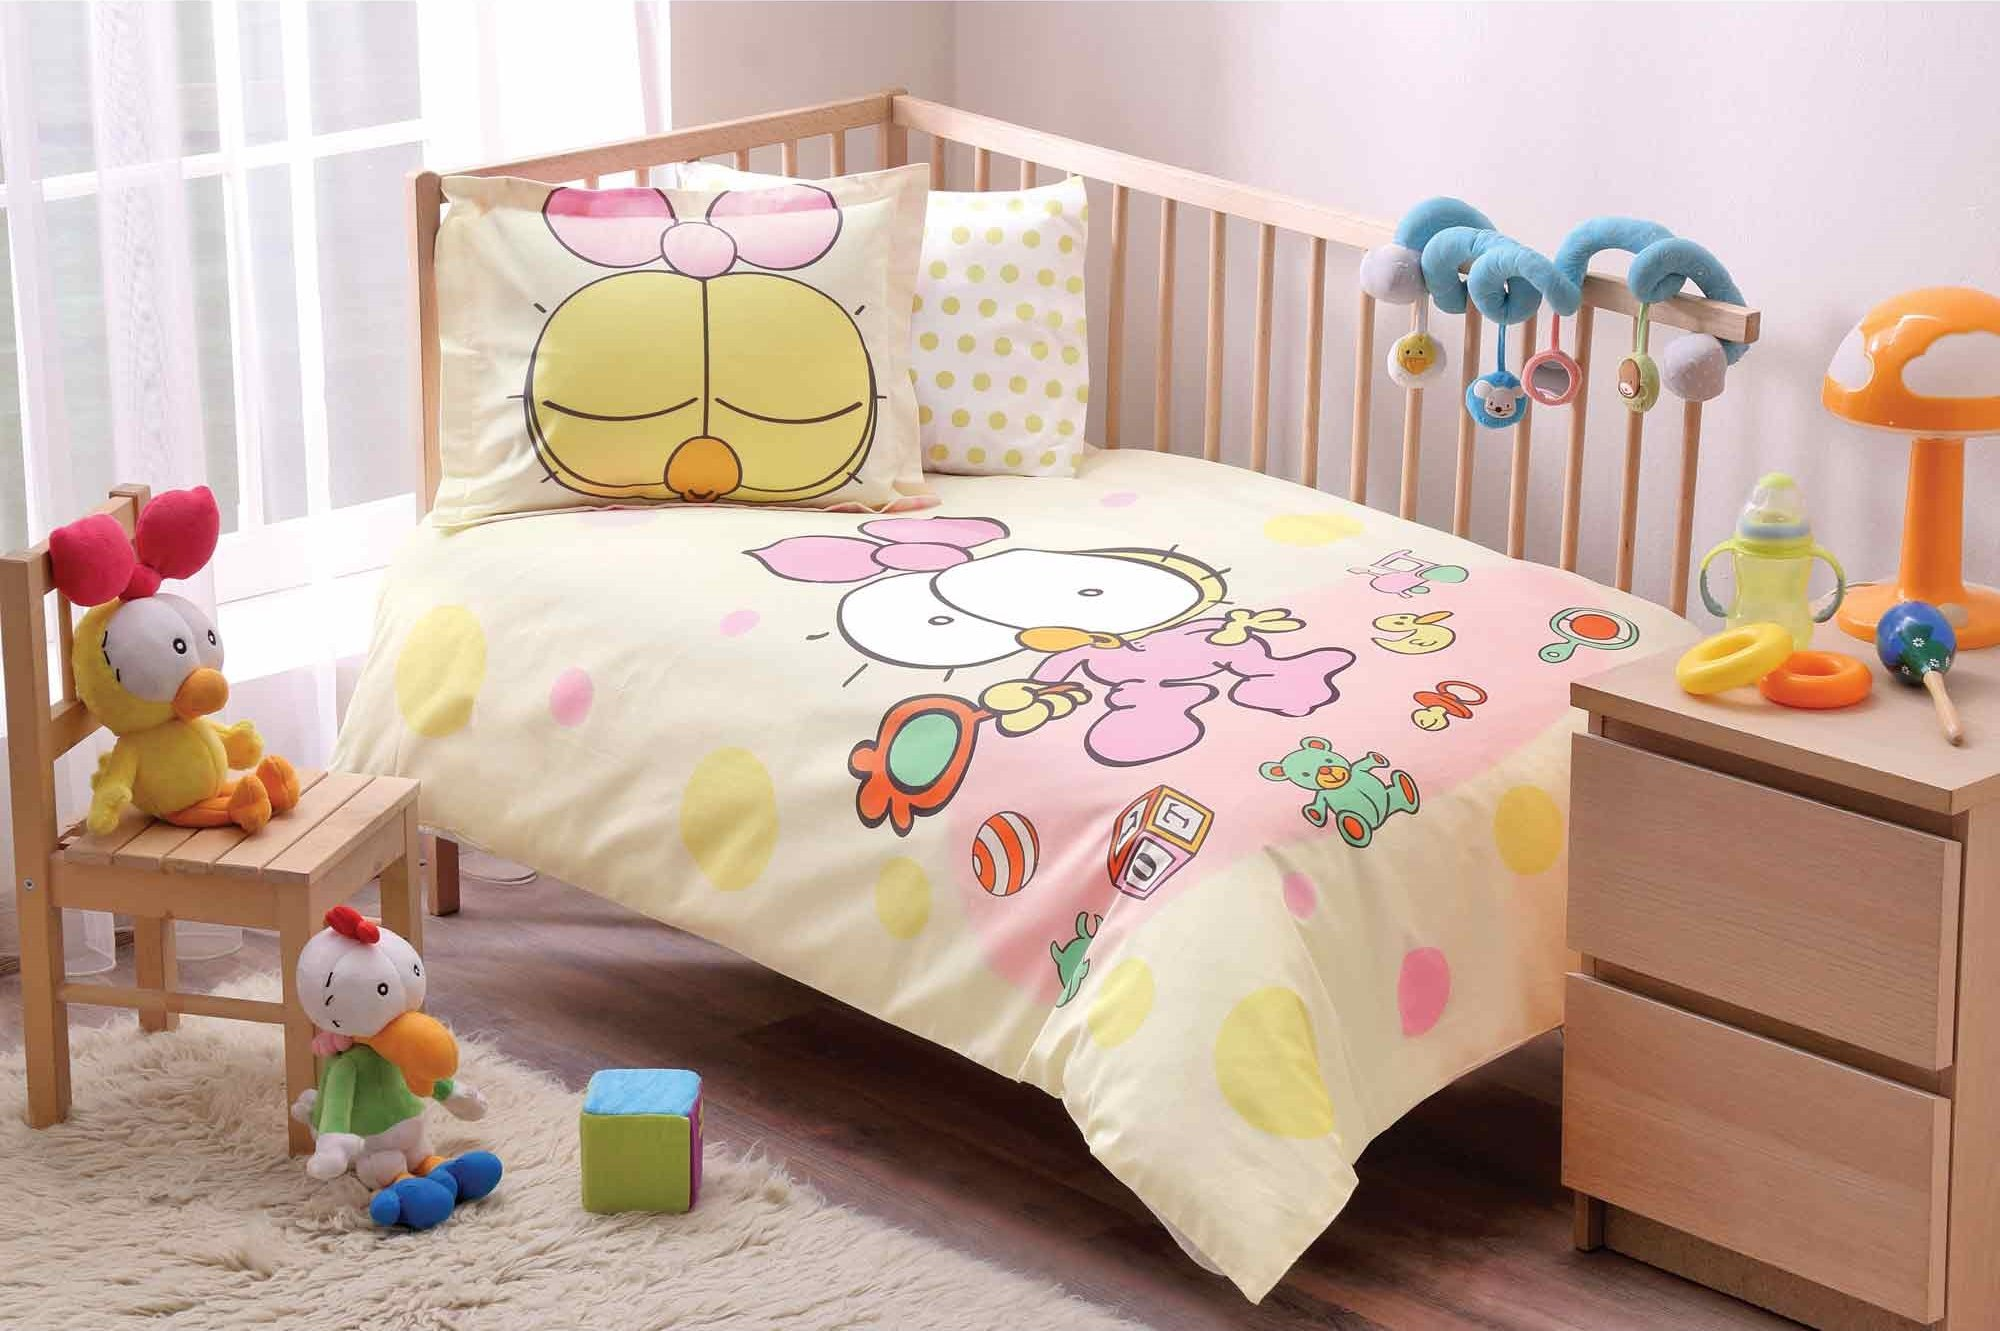 100% Organic Cotton Soft and Healthy Baby Crib Bed Duvet Cover Set 4 Pieces, Sizinkiler Lemon Baby Bedding Set